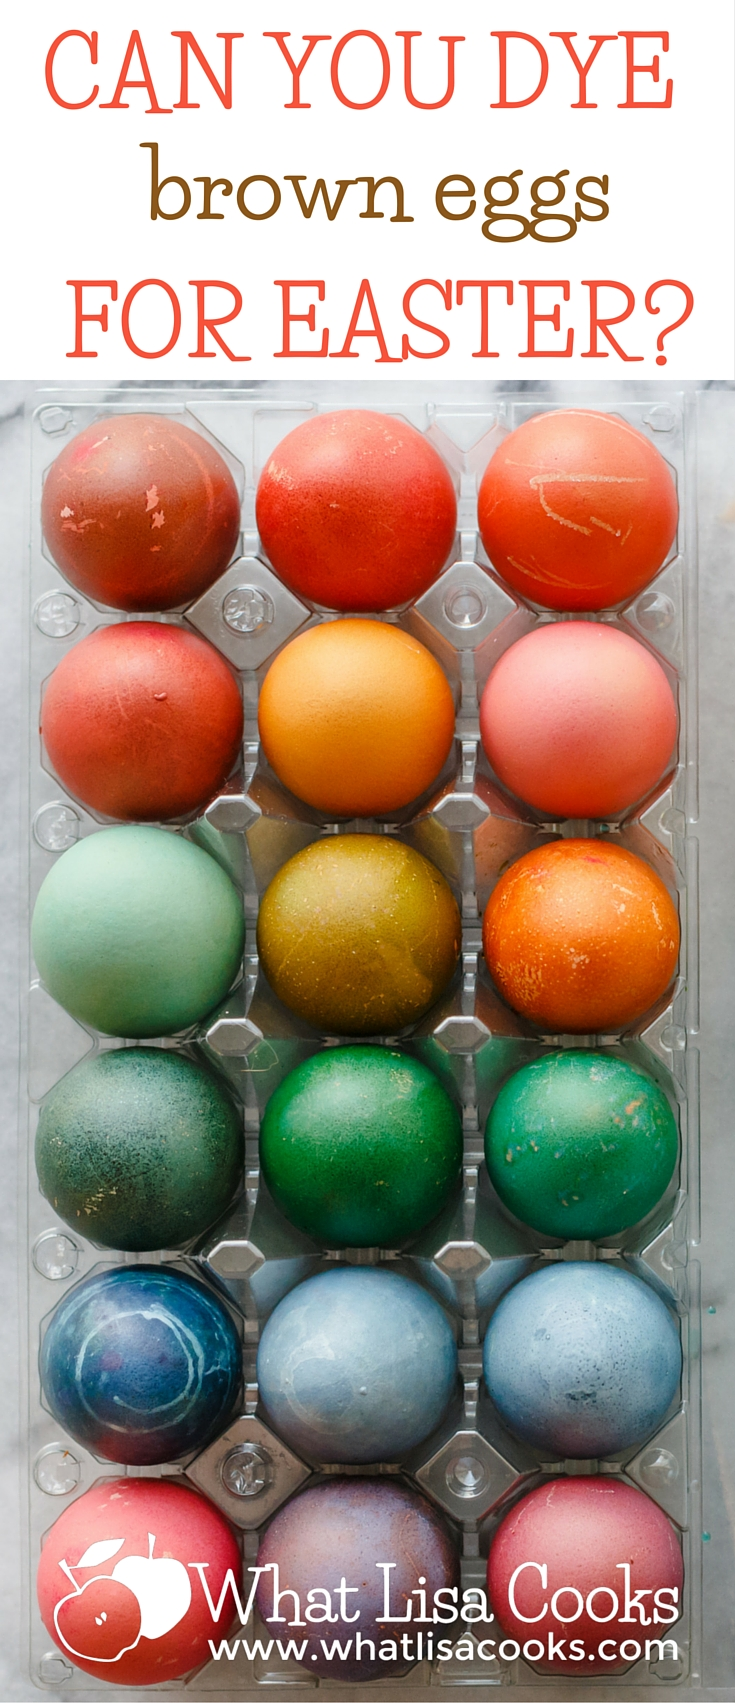 How to dye brown eggs for easter! from WhatLisaCooks.com